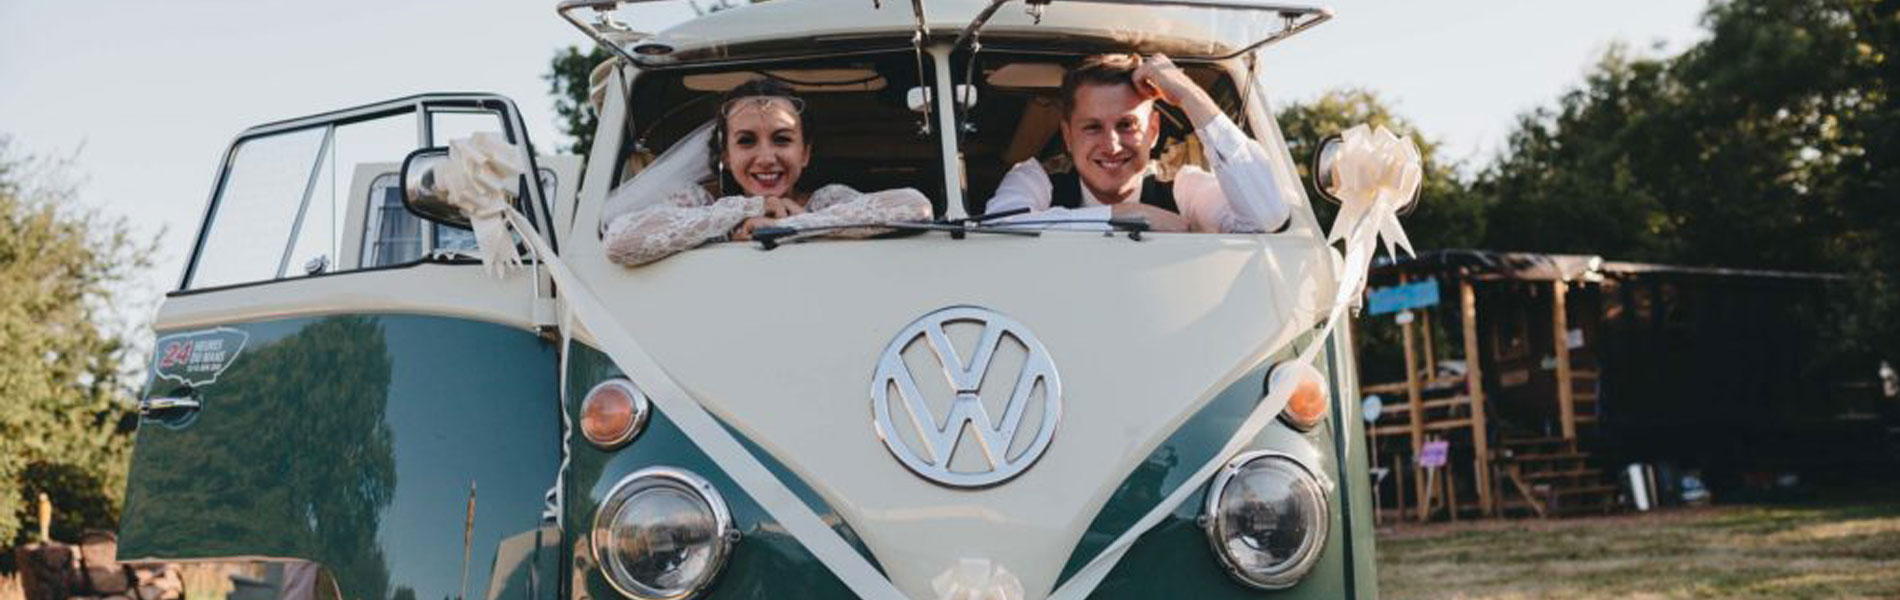 Turn Your Wedding Day Into A Fairytail